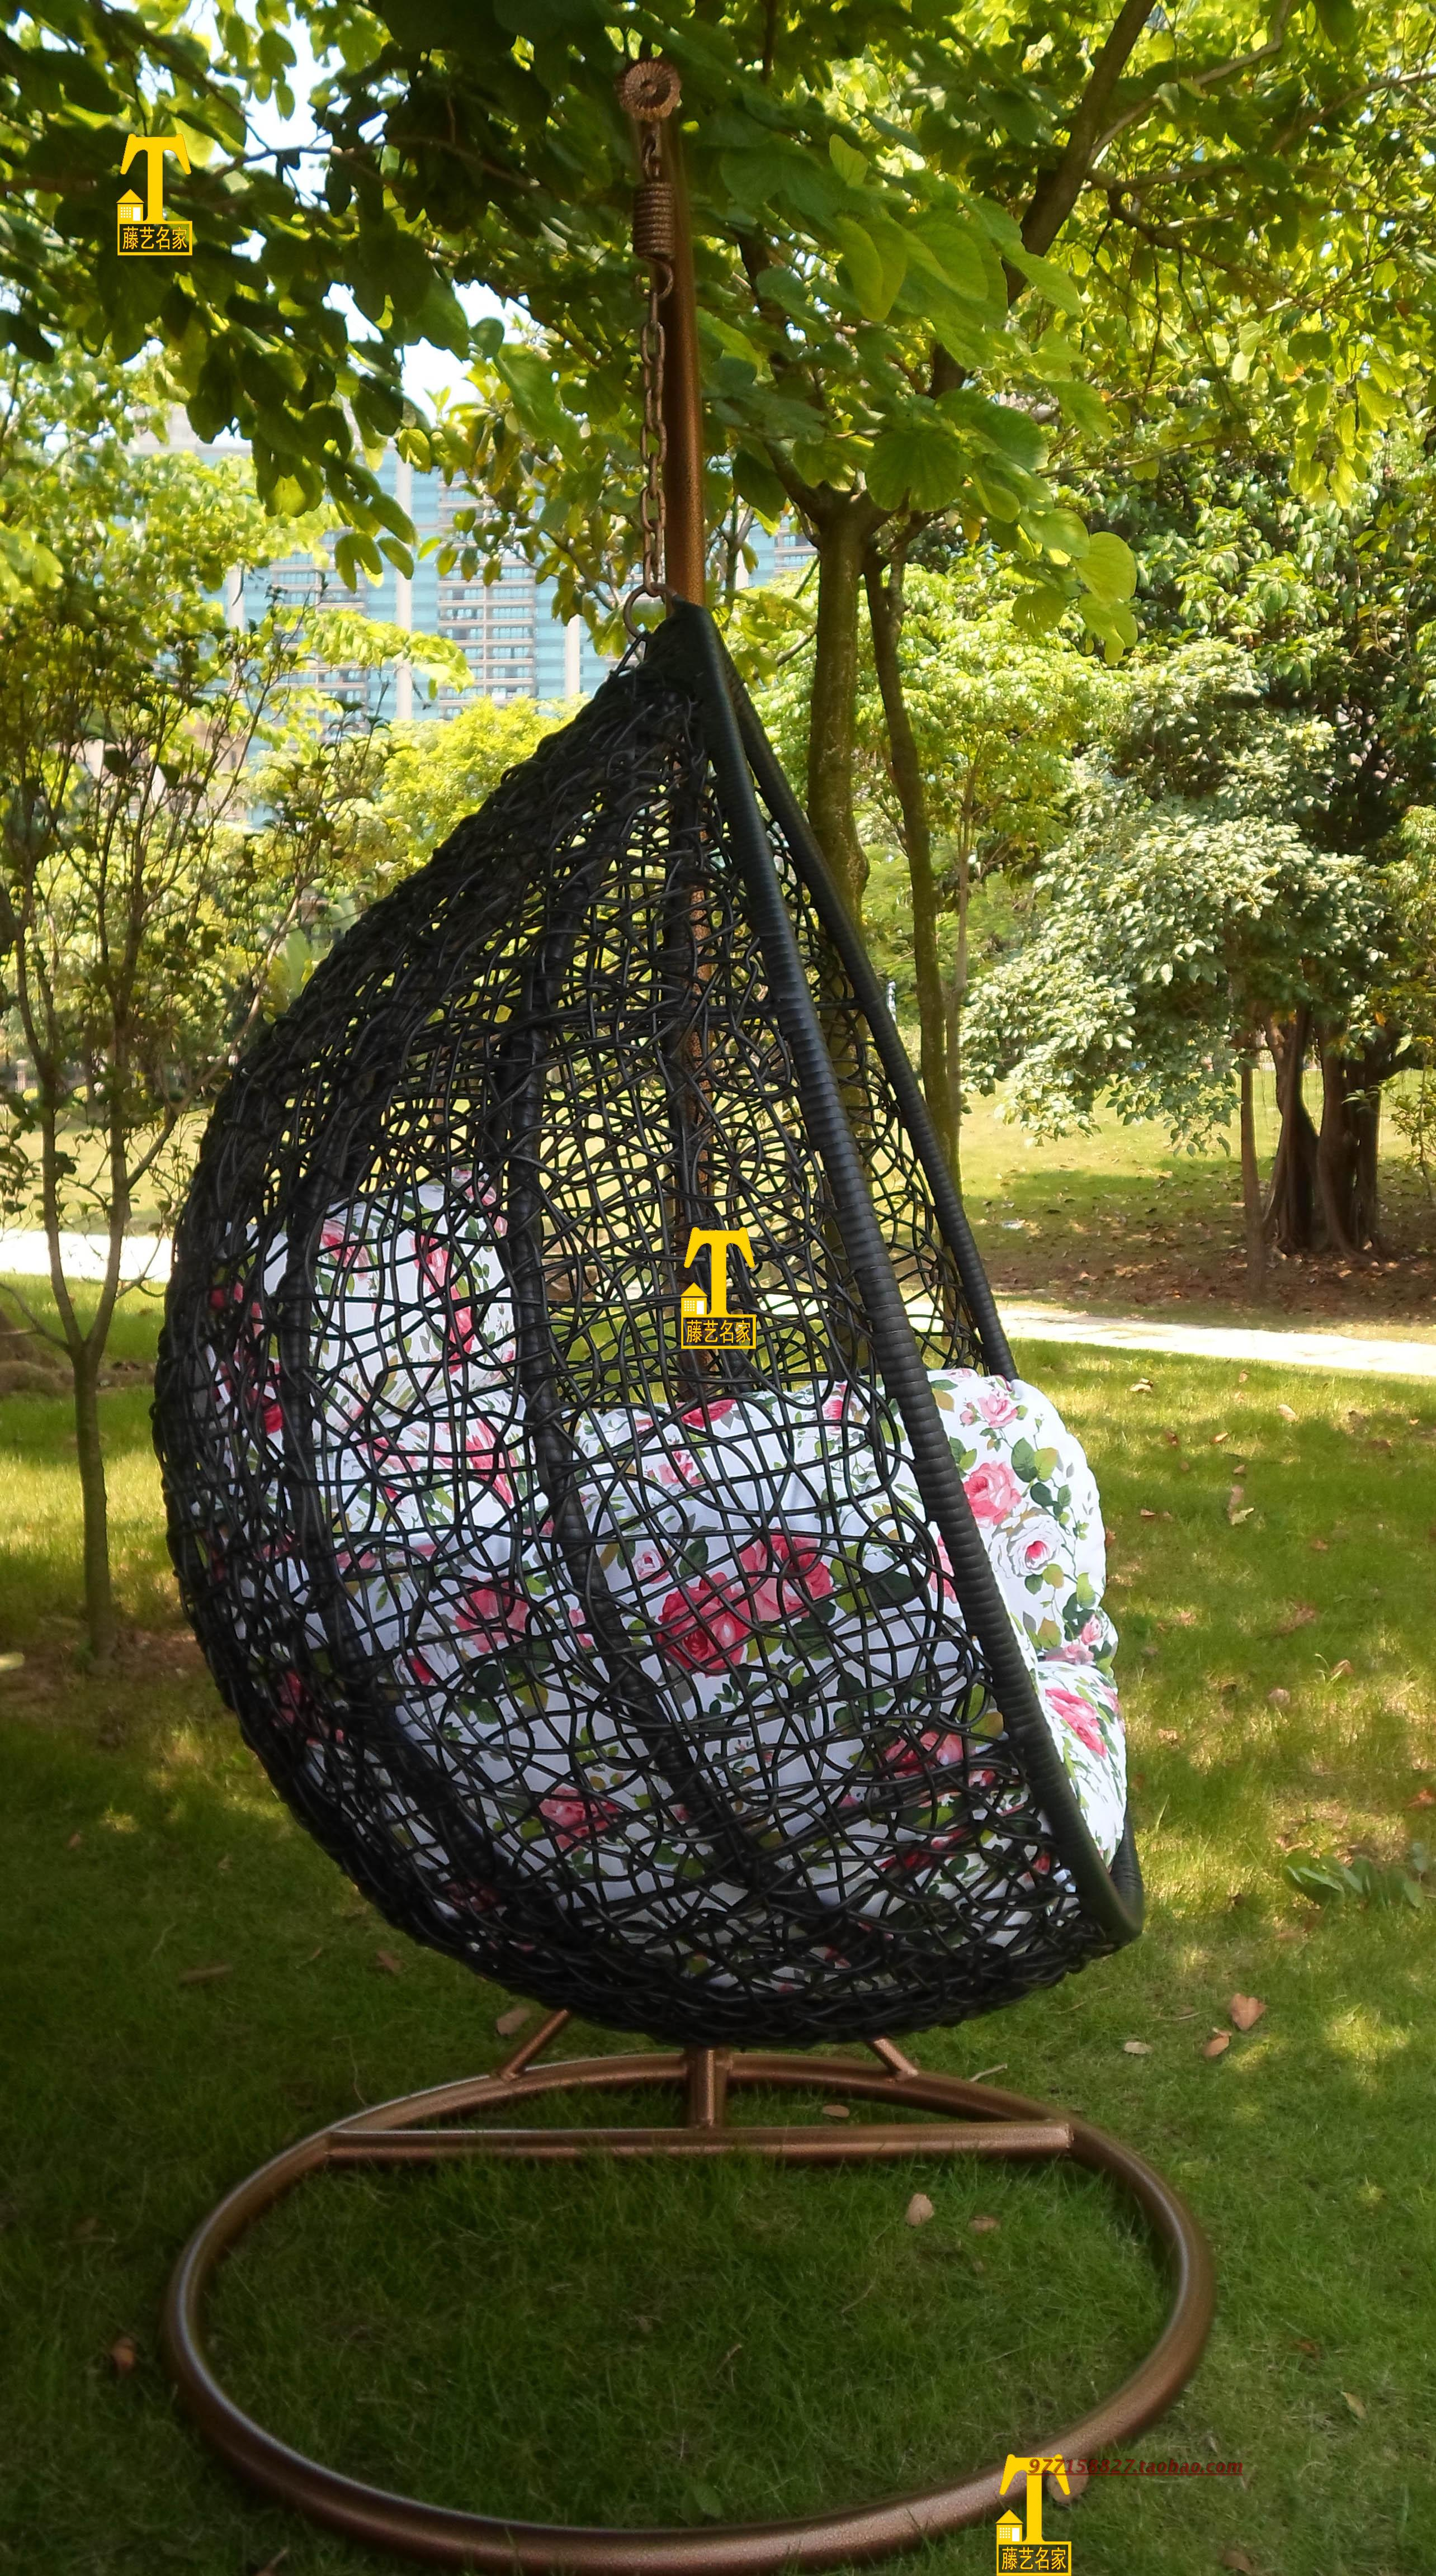 Outdoor Wicker Chair Swing Hanging Indoor Basket Rocking Specials Big Full  Set Of Large Black In Hanging Baskets From Home U0026 Garden On Aliexpress.com  ...